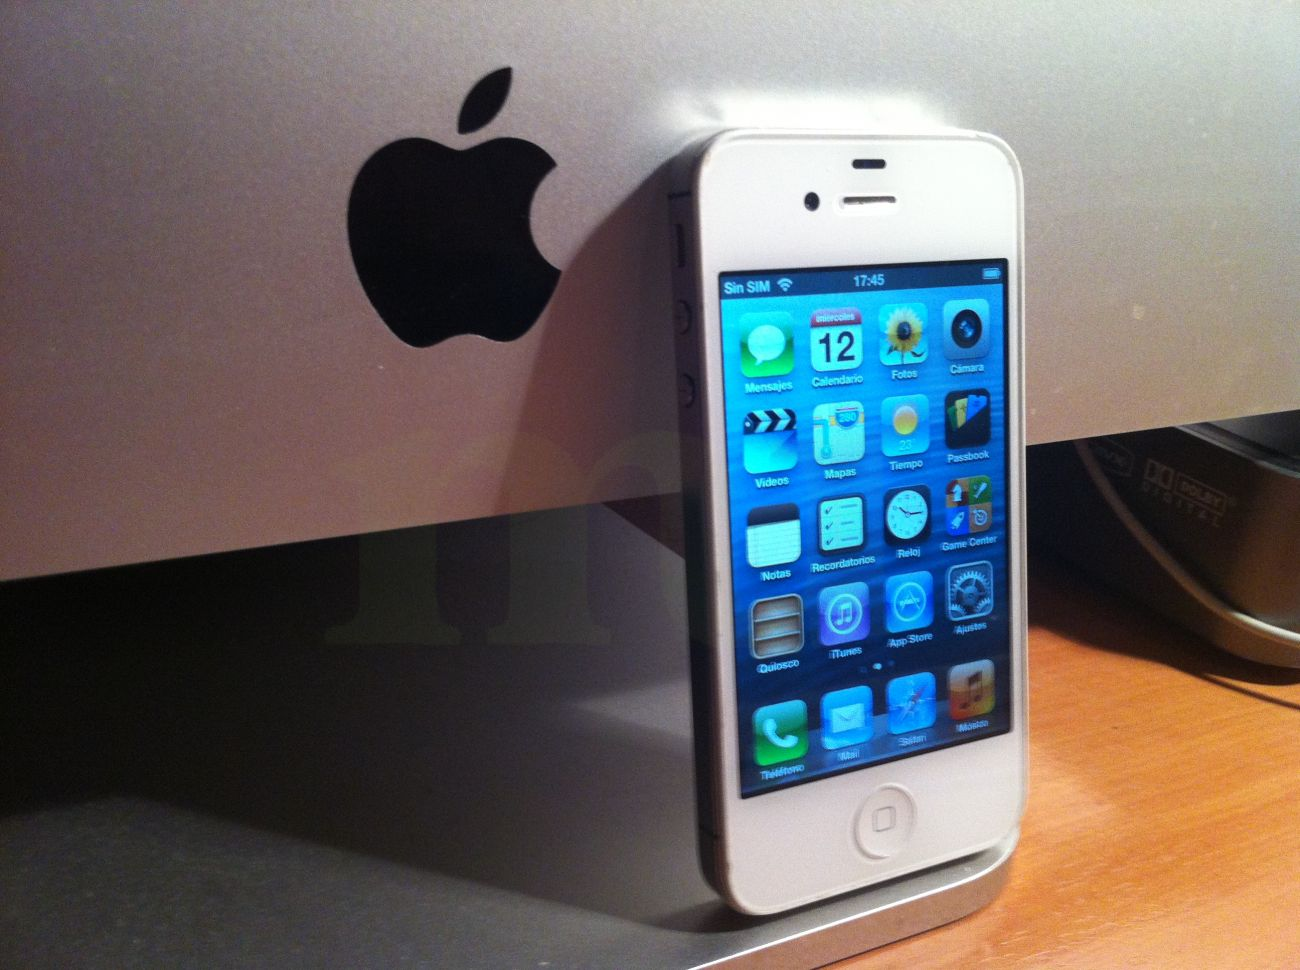 Precio Iphone 4s Libre Iphone Iphone 4s Libre Blanco 16 Gb Venta Segunda Mano Apple